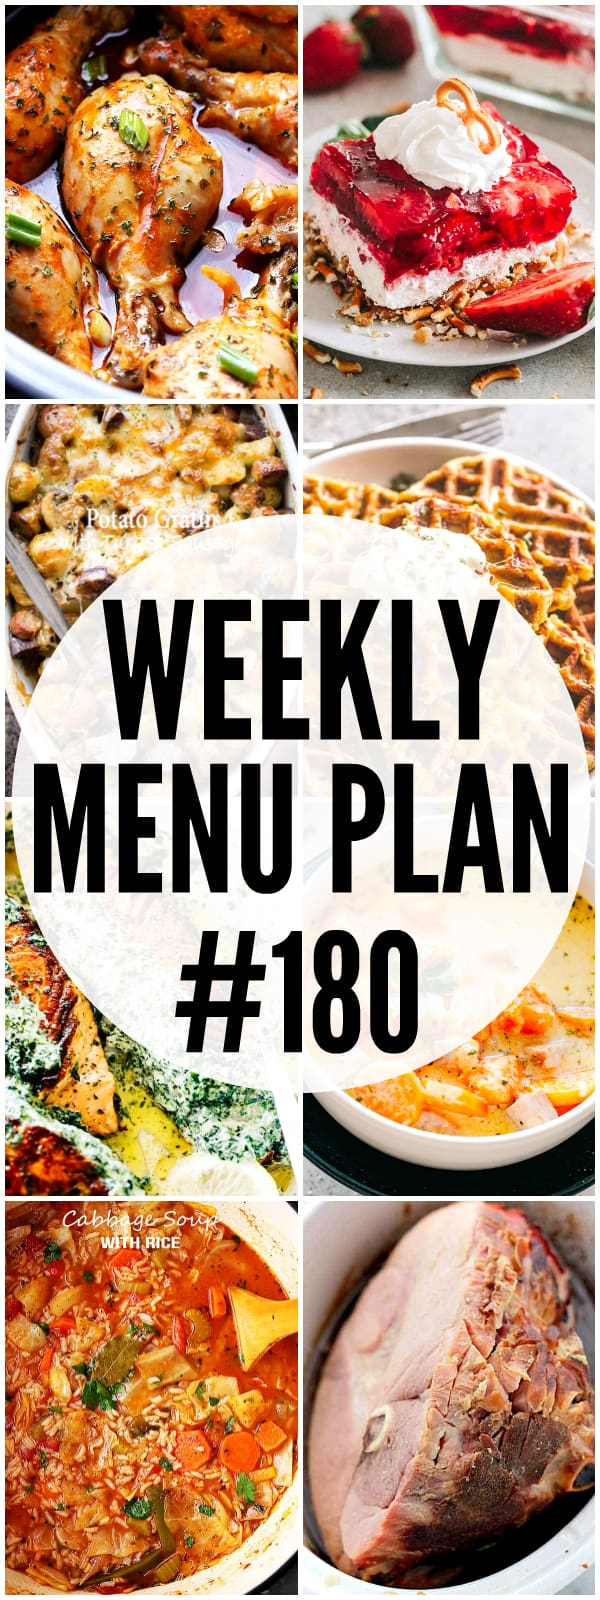 WEEKLY MENU PLAN 180